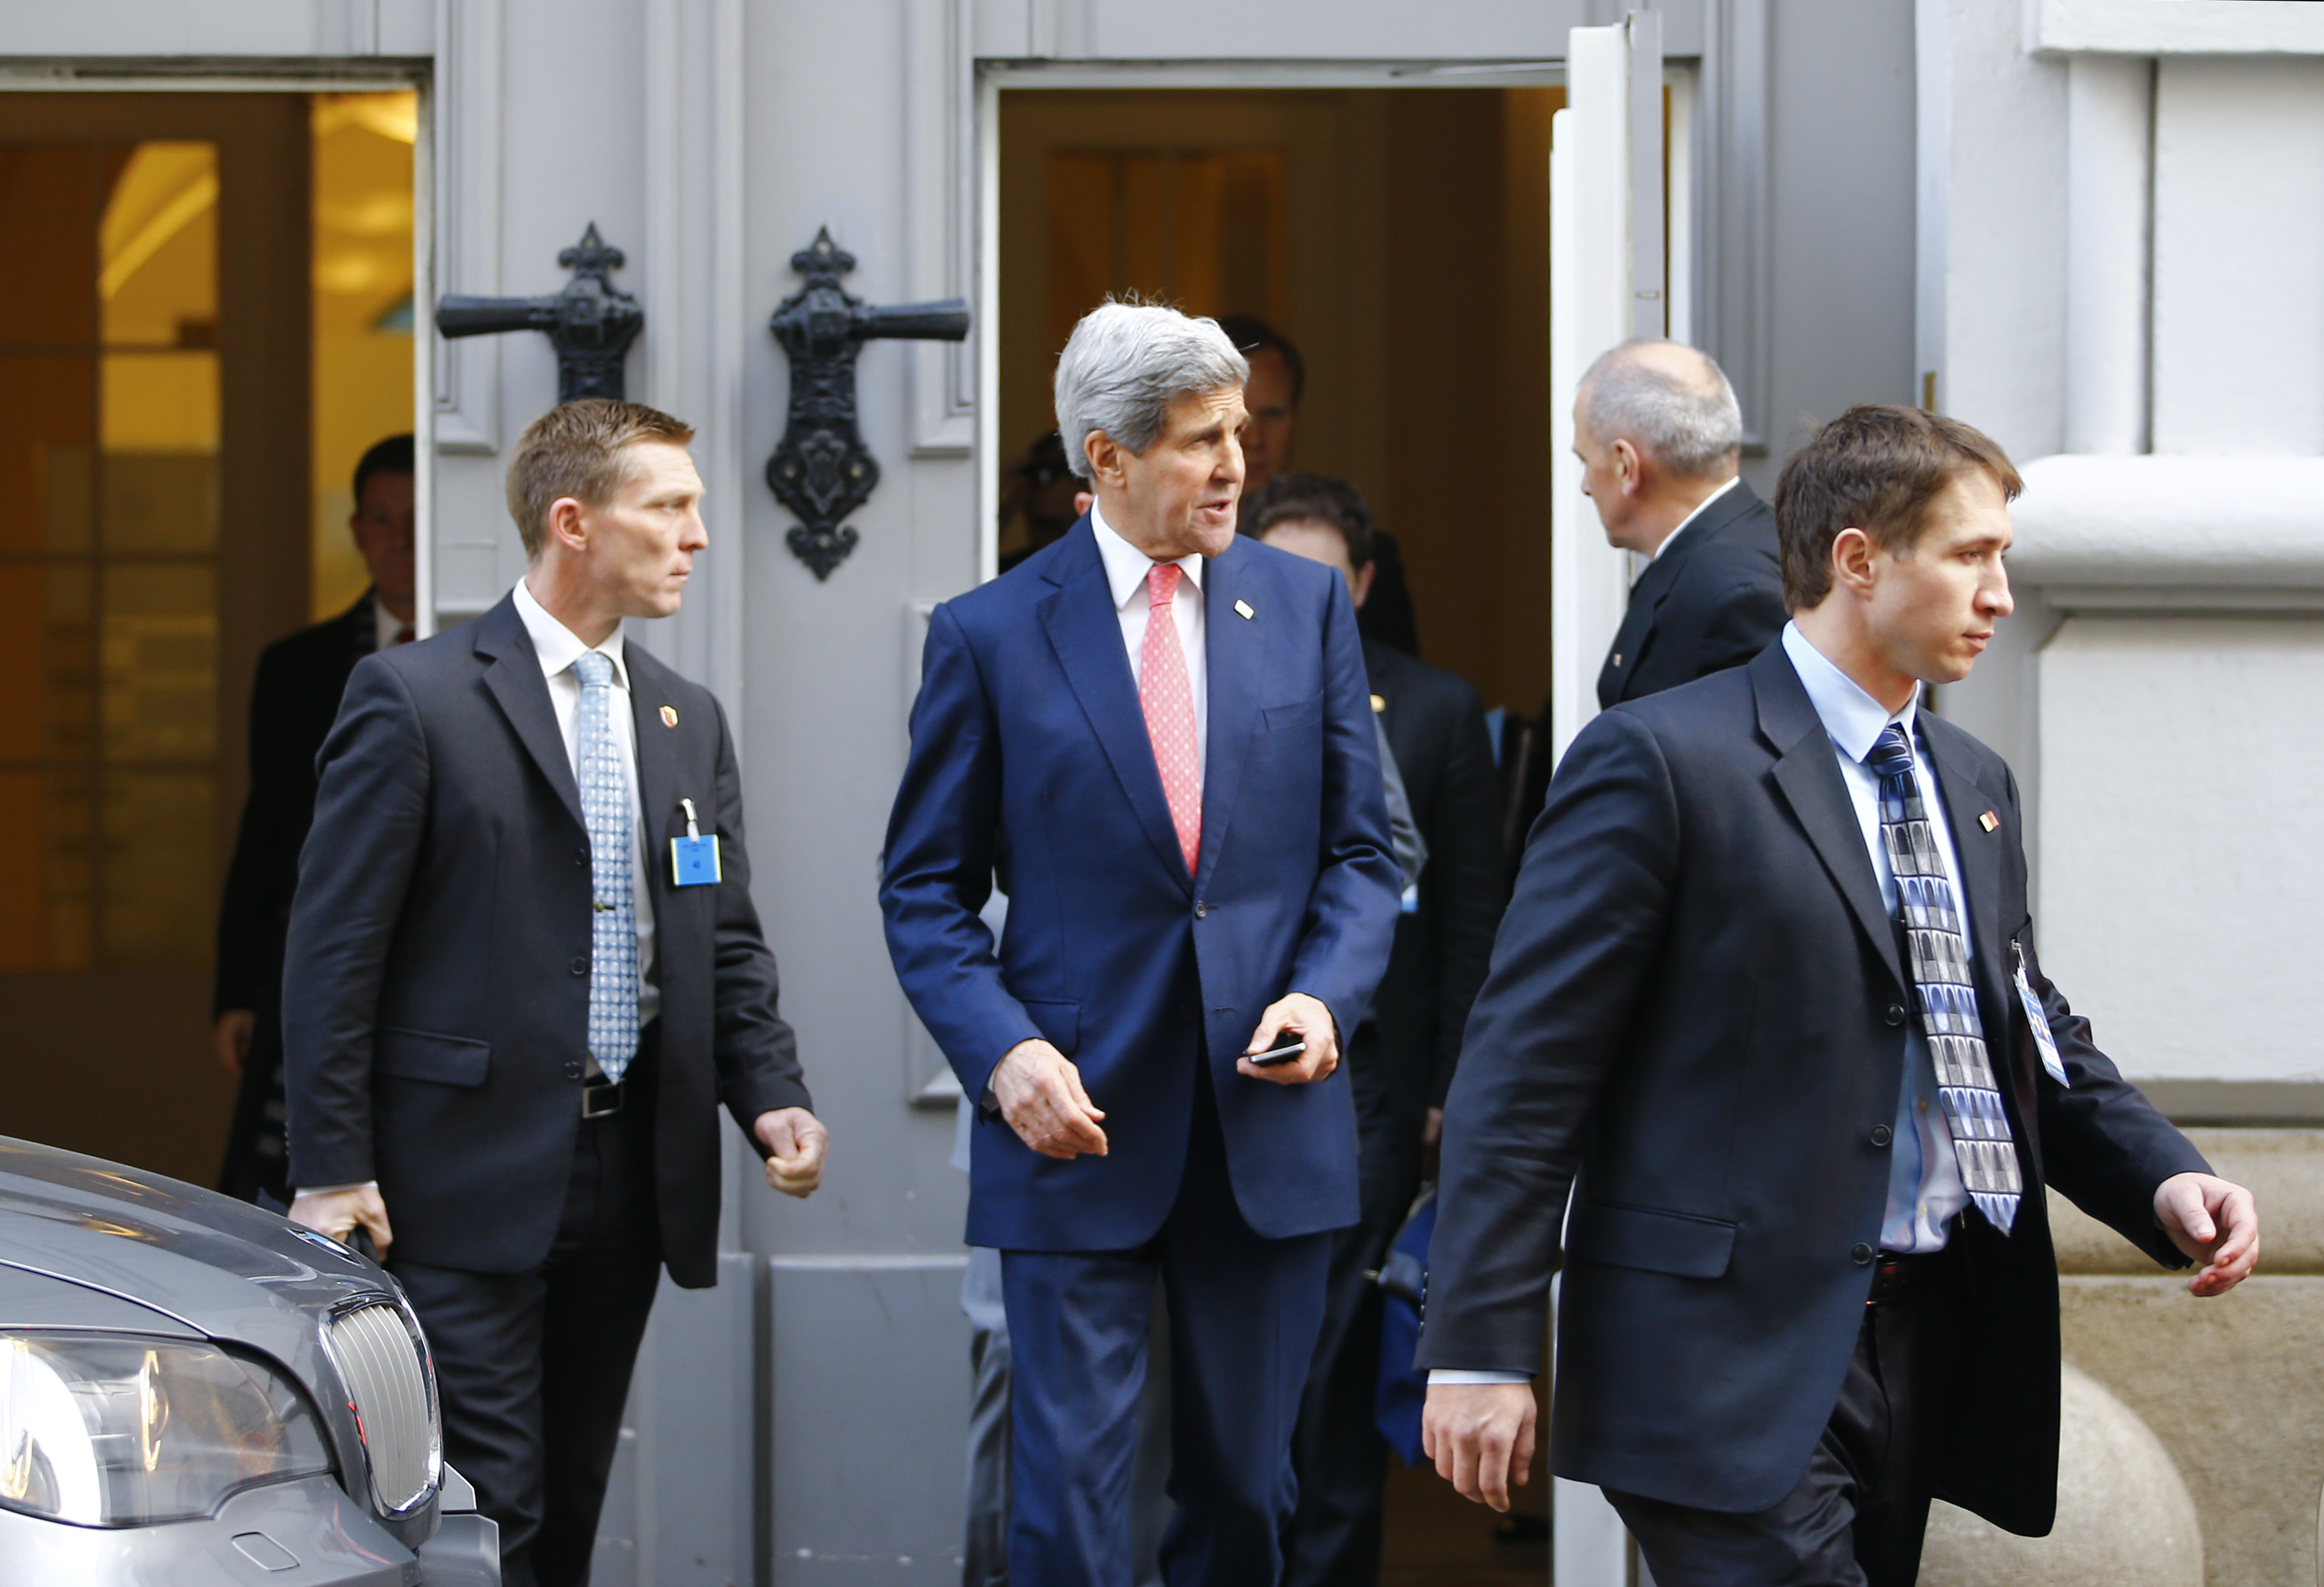 U.S. Secretary of State John Kerry leaves the Palais Coburg in Vienna Nov. 23, 2014.